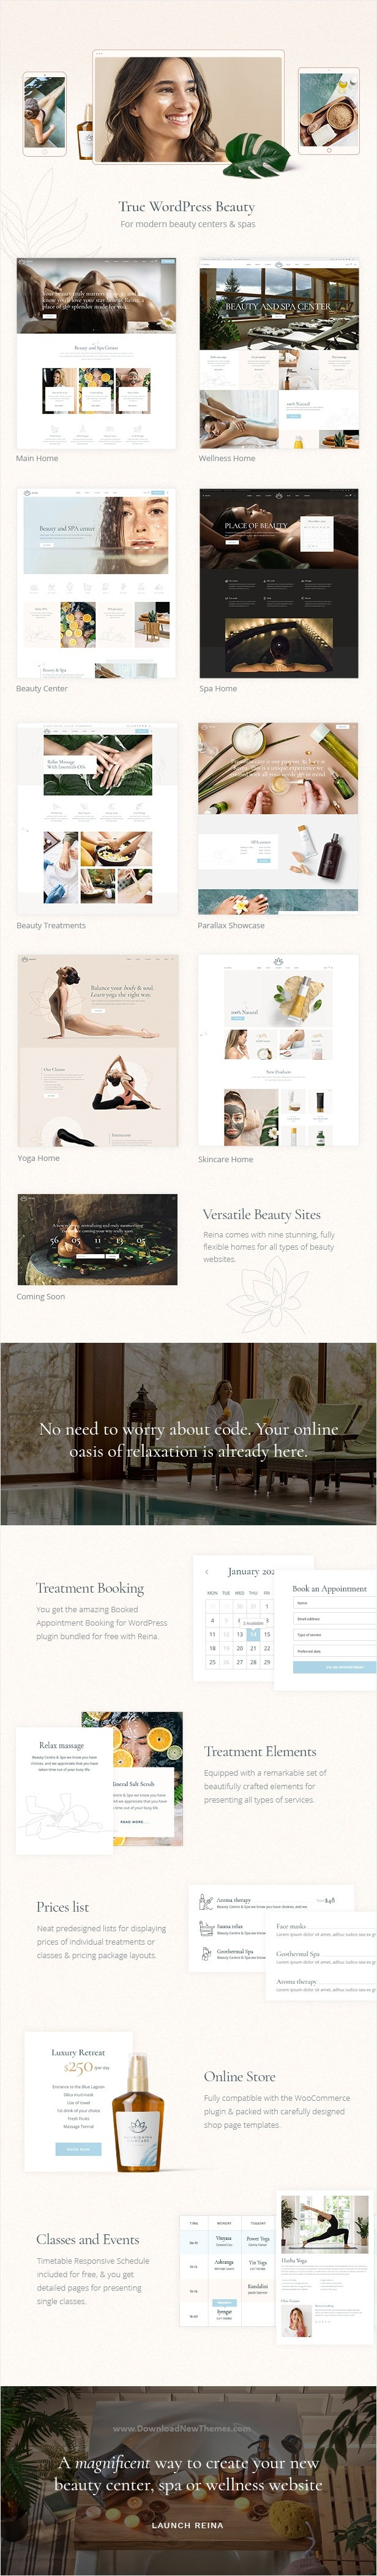 Spa and Wellness Website Theme